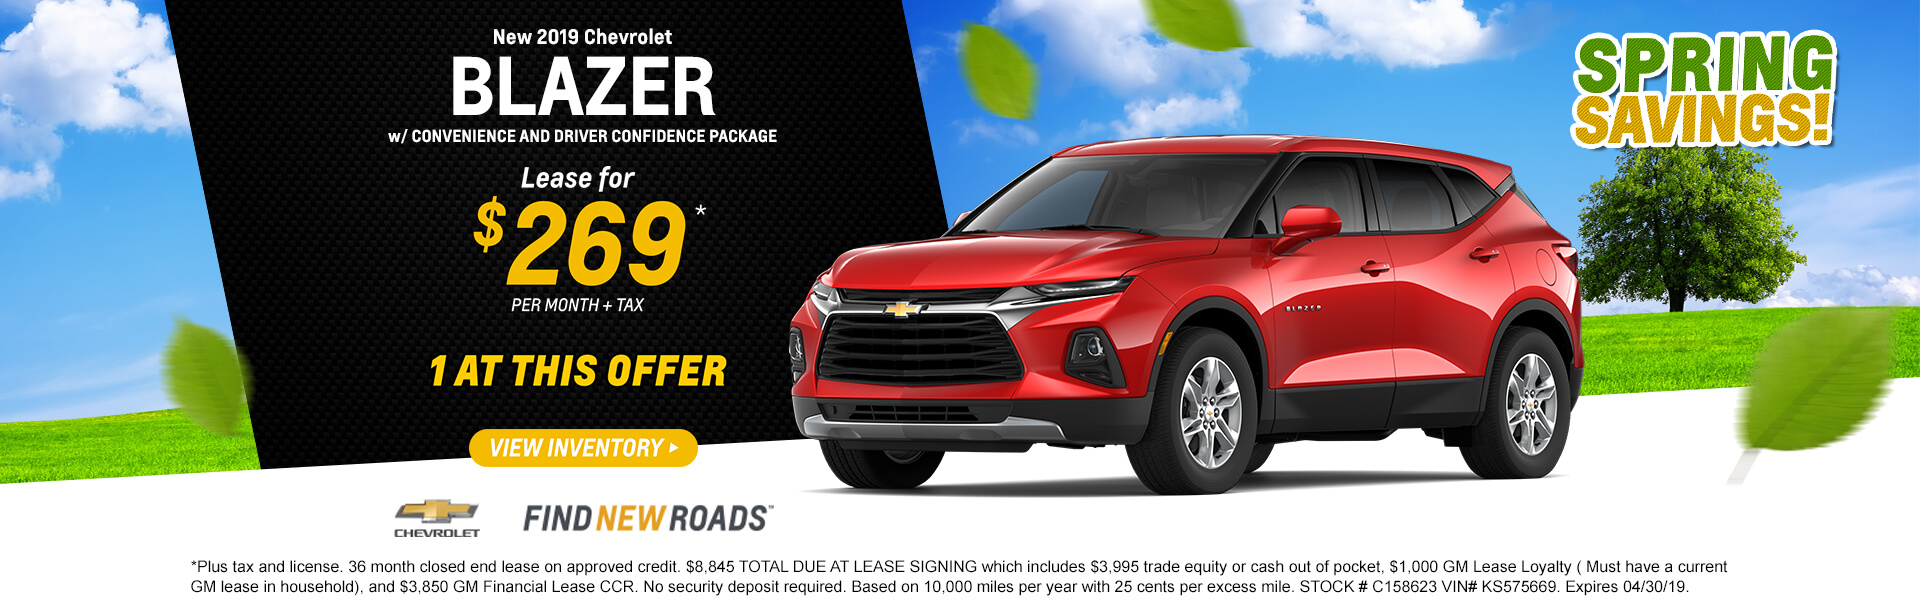 2019 Blazer Base Lease for $269 $8,845 TOTAL DUE AT LEASE SIGNING which includes $3,995 trade equity or cash out of pocket, $1,000 GM Lease Loyalty ( Must have a current GM lease in household), and $3,850 GM Financial Lease CCR. No security deposit required. Based on 10,000 miles per year with 25 cents per excess mile. STOCK # C158623 VIN# KS575669. Expires 04/30/19.